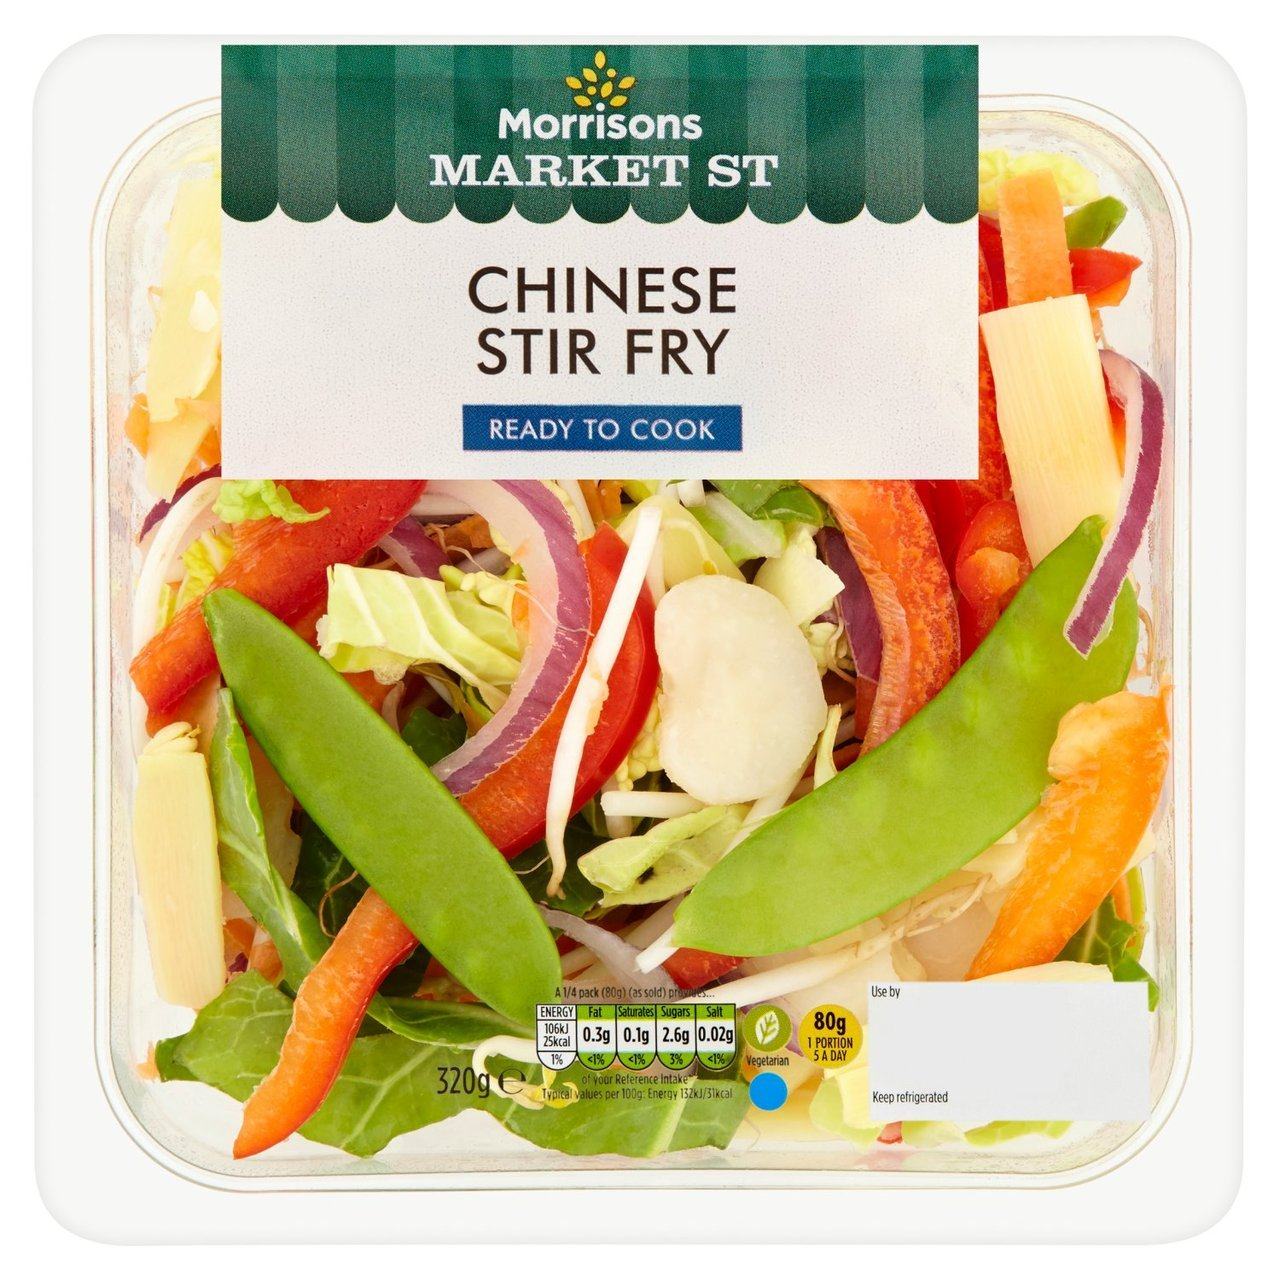 Enjoy a Stir Fry with Morrisons' ready to cook meal, just £3